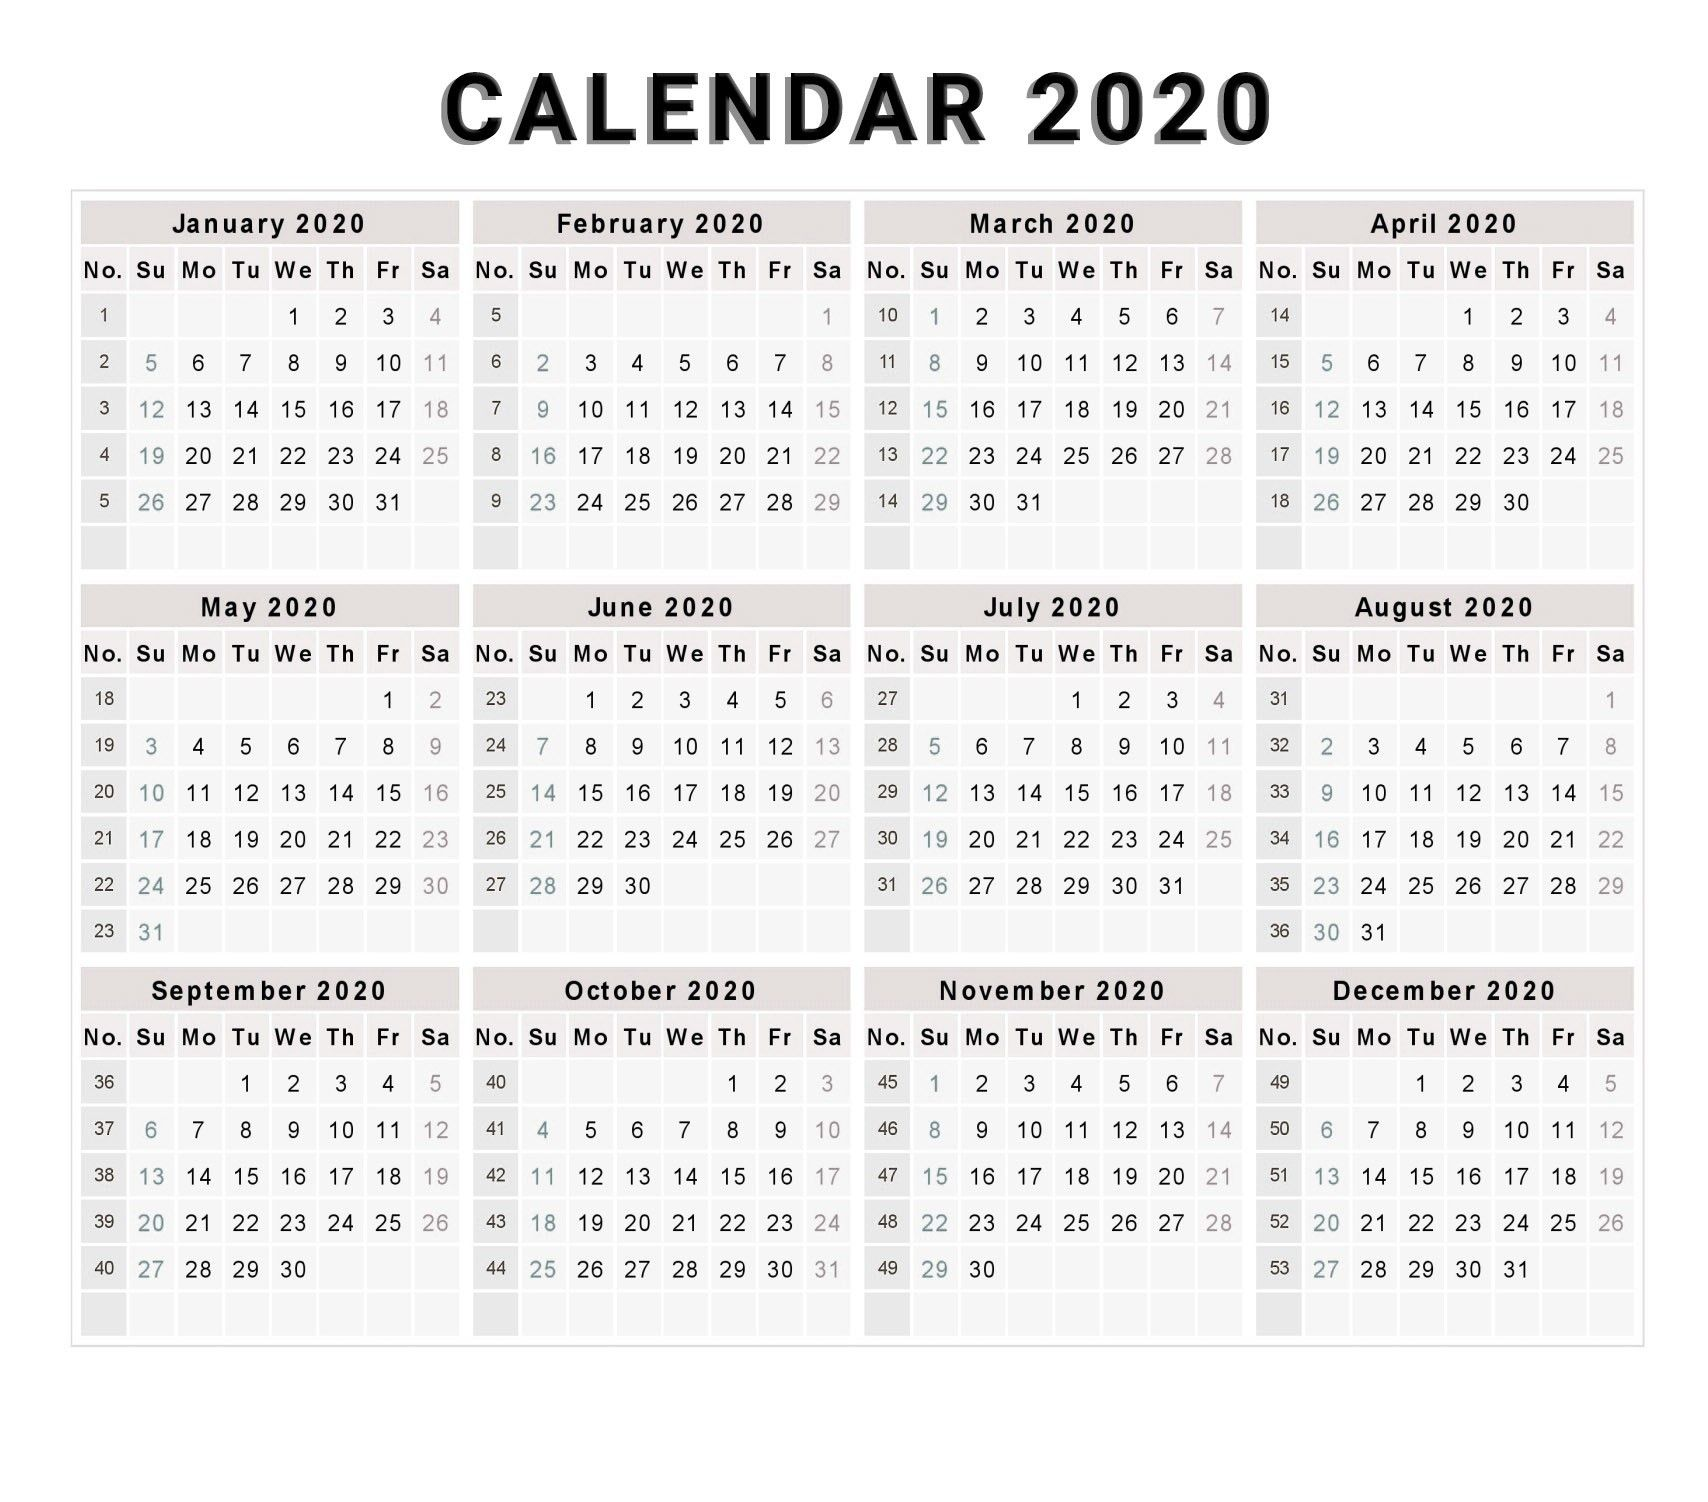 photo relating to Free Printable 2020 Calendar referred to as calendar 2020 no cost printable calendar 2020 absolutely free 2020